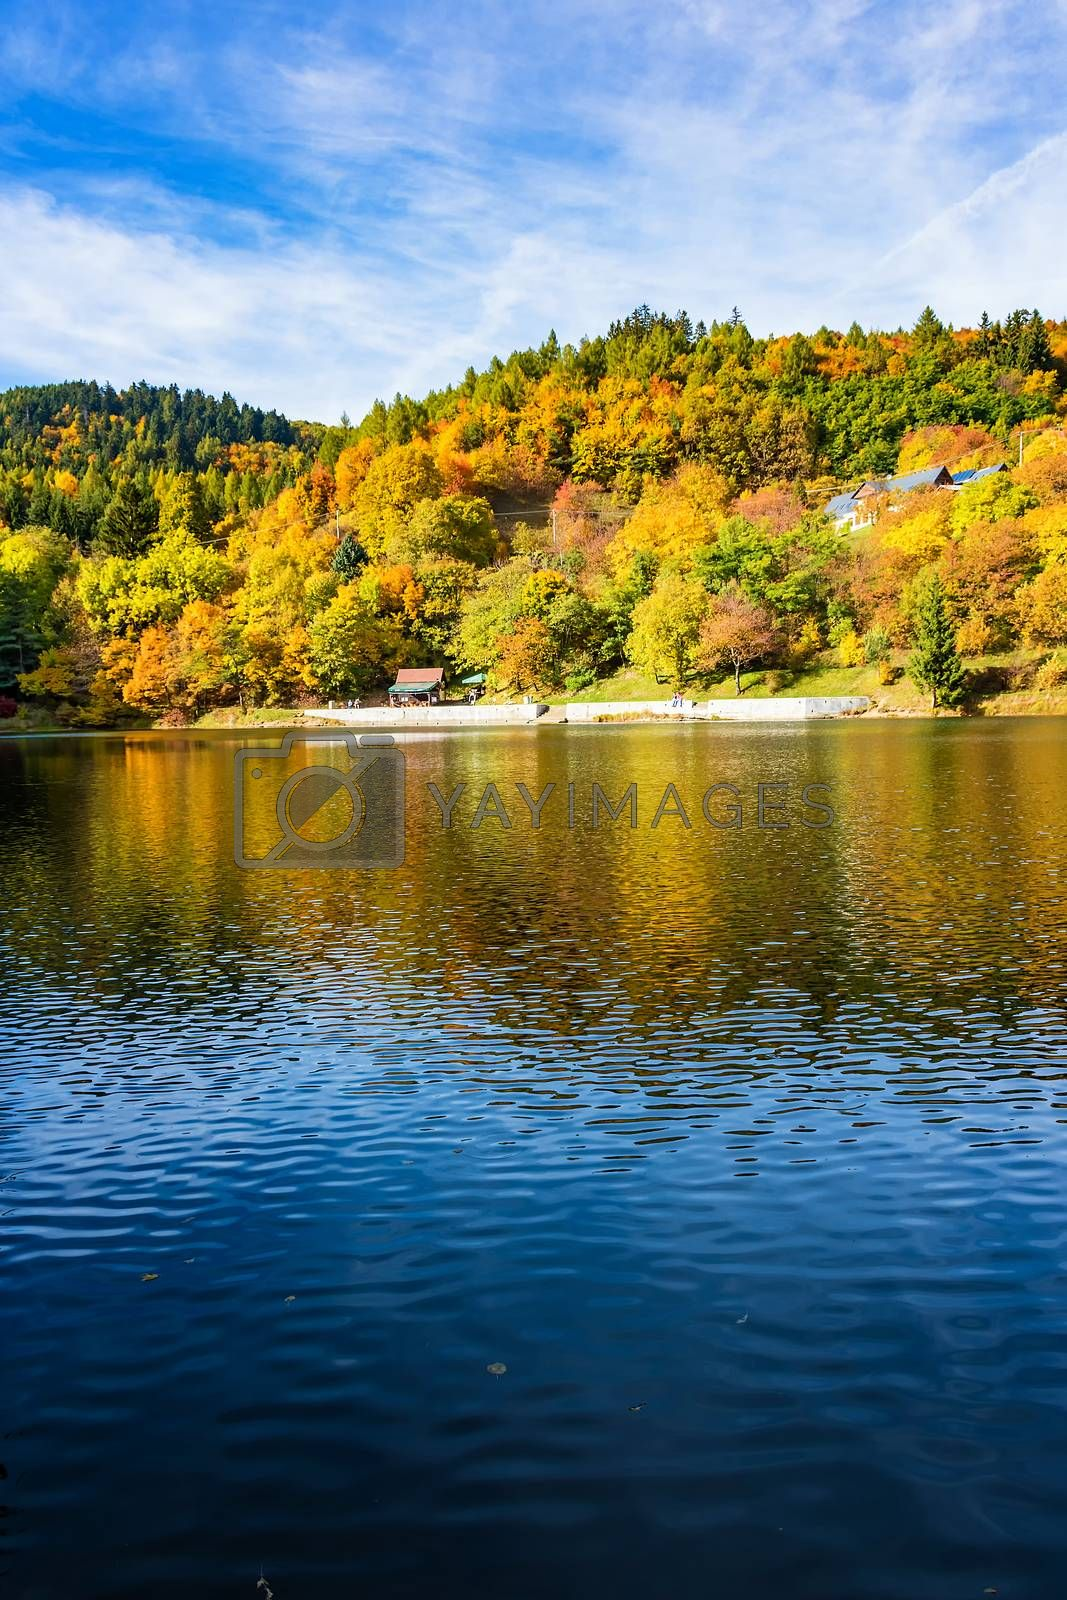 Beautiful reflection of colorful trees in water of lake during autumn